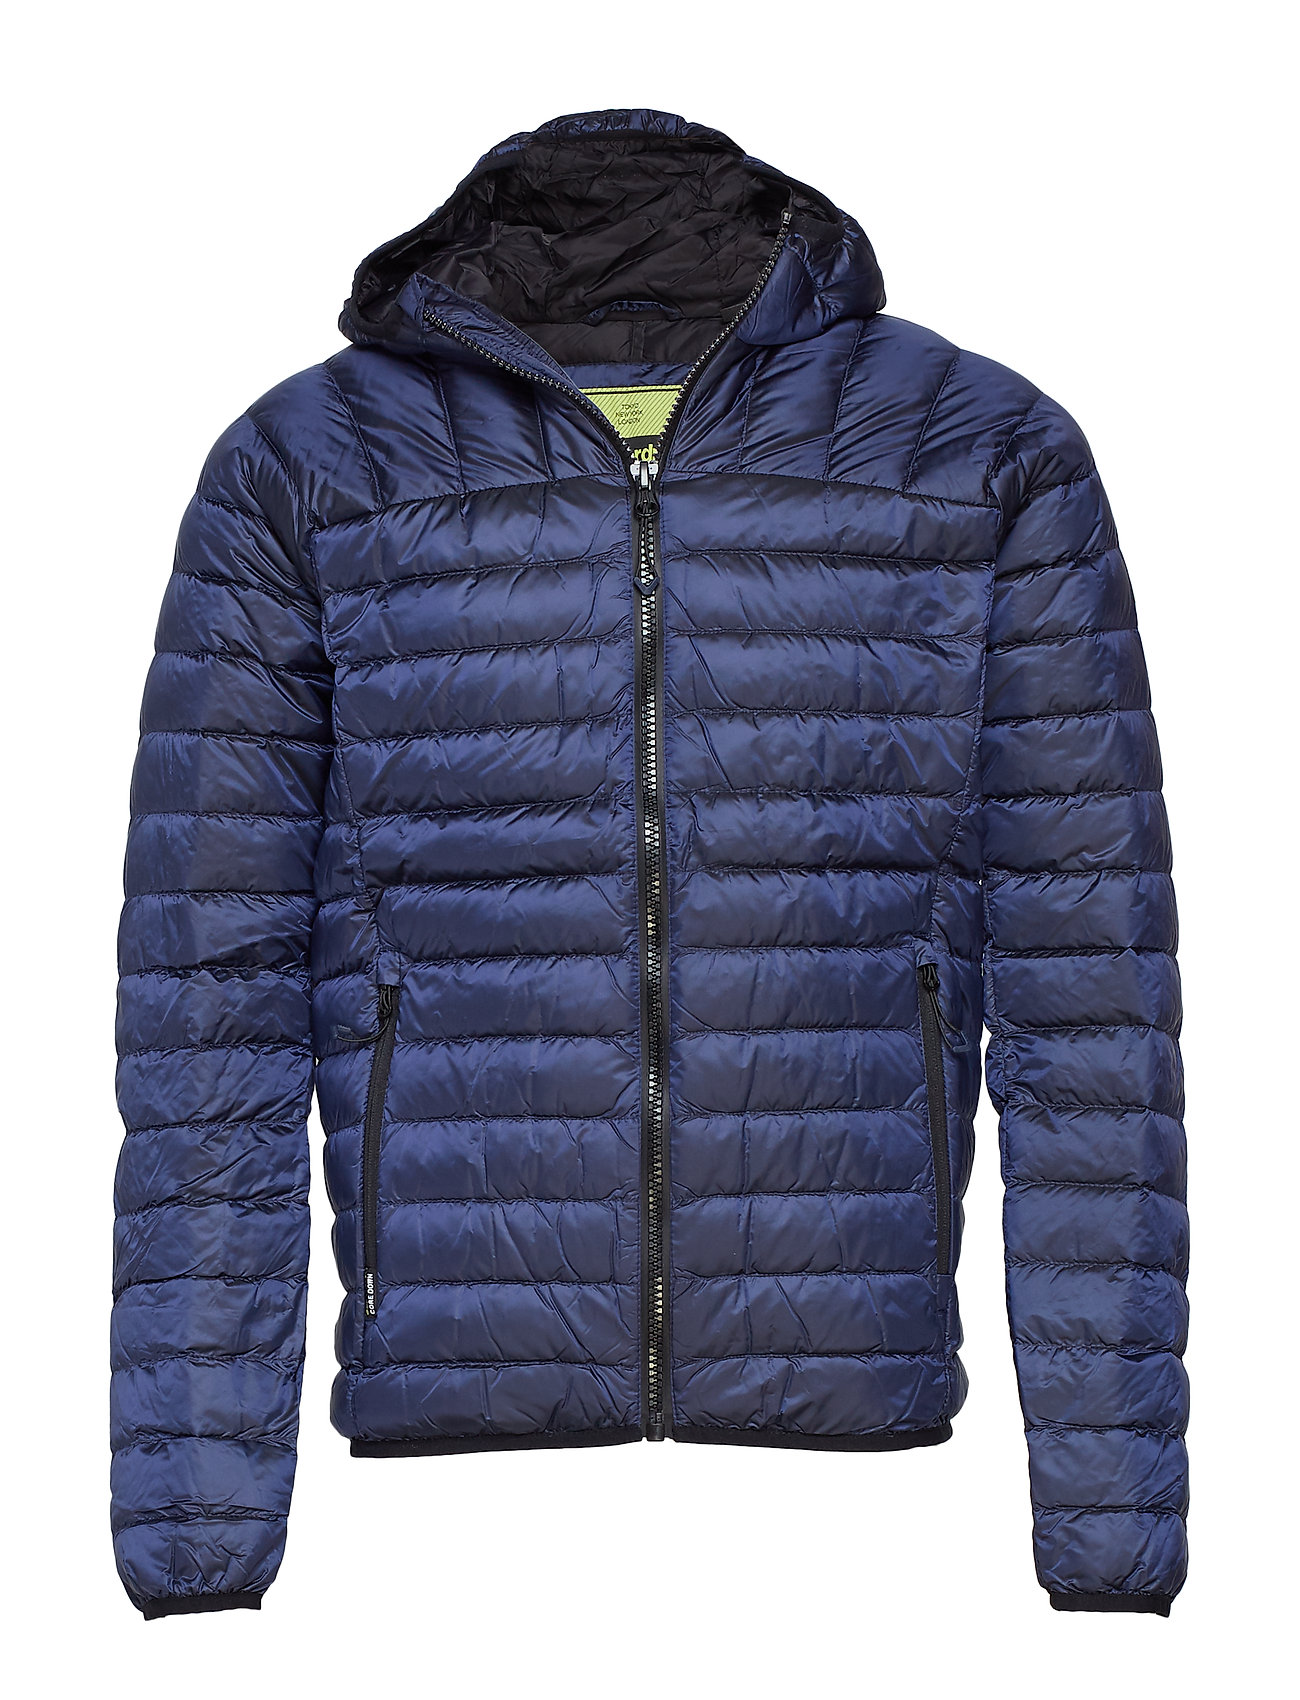 Superdry CORE DOWN HOODED JACKET - NAVY